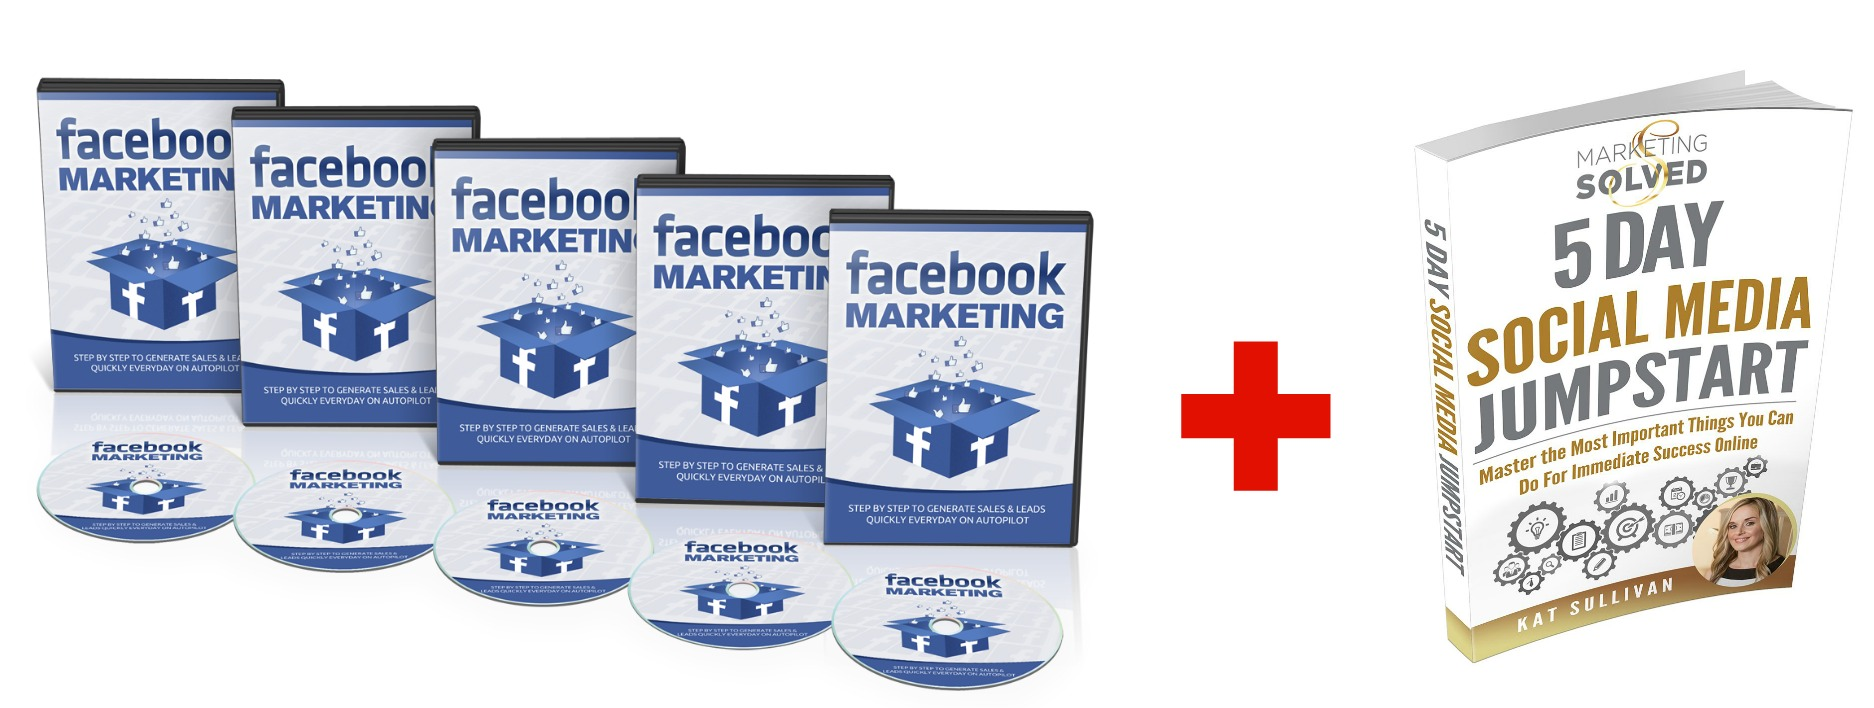 Facebook Marketing Marketing Solved